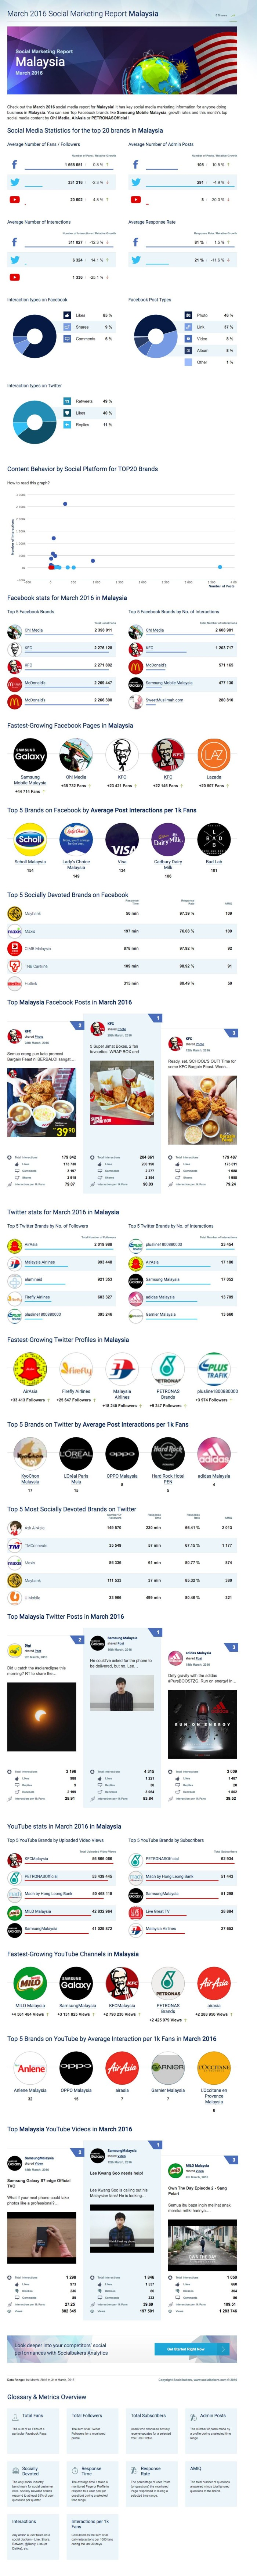 March 2016 Social Marketing Report Malaysia   Socialbakers (2)